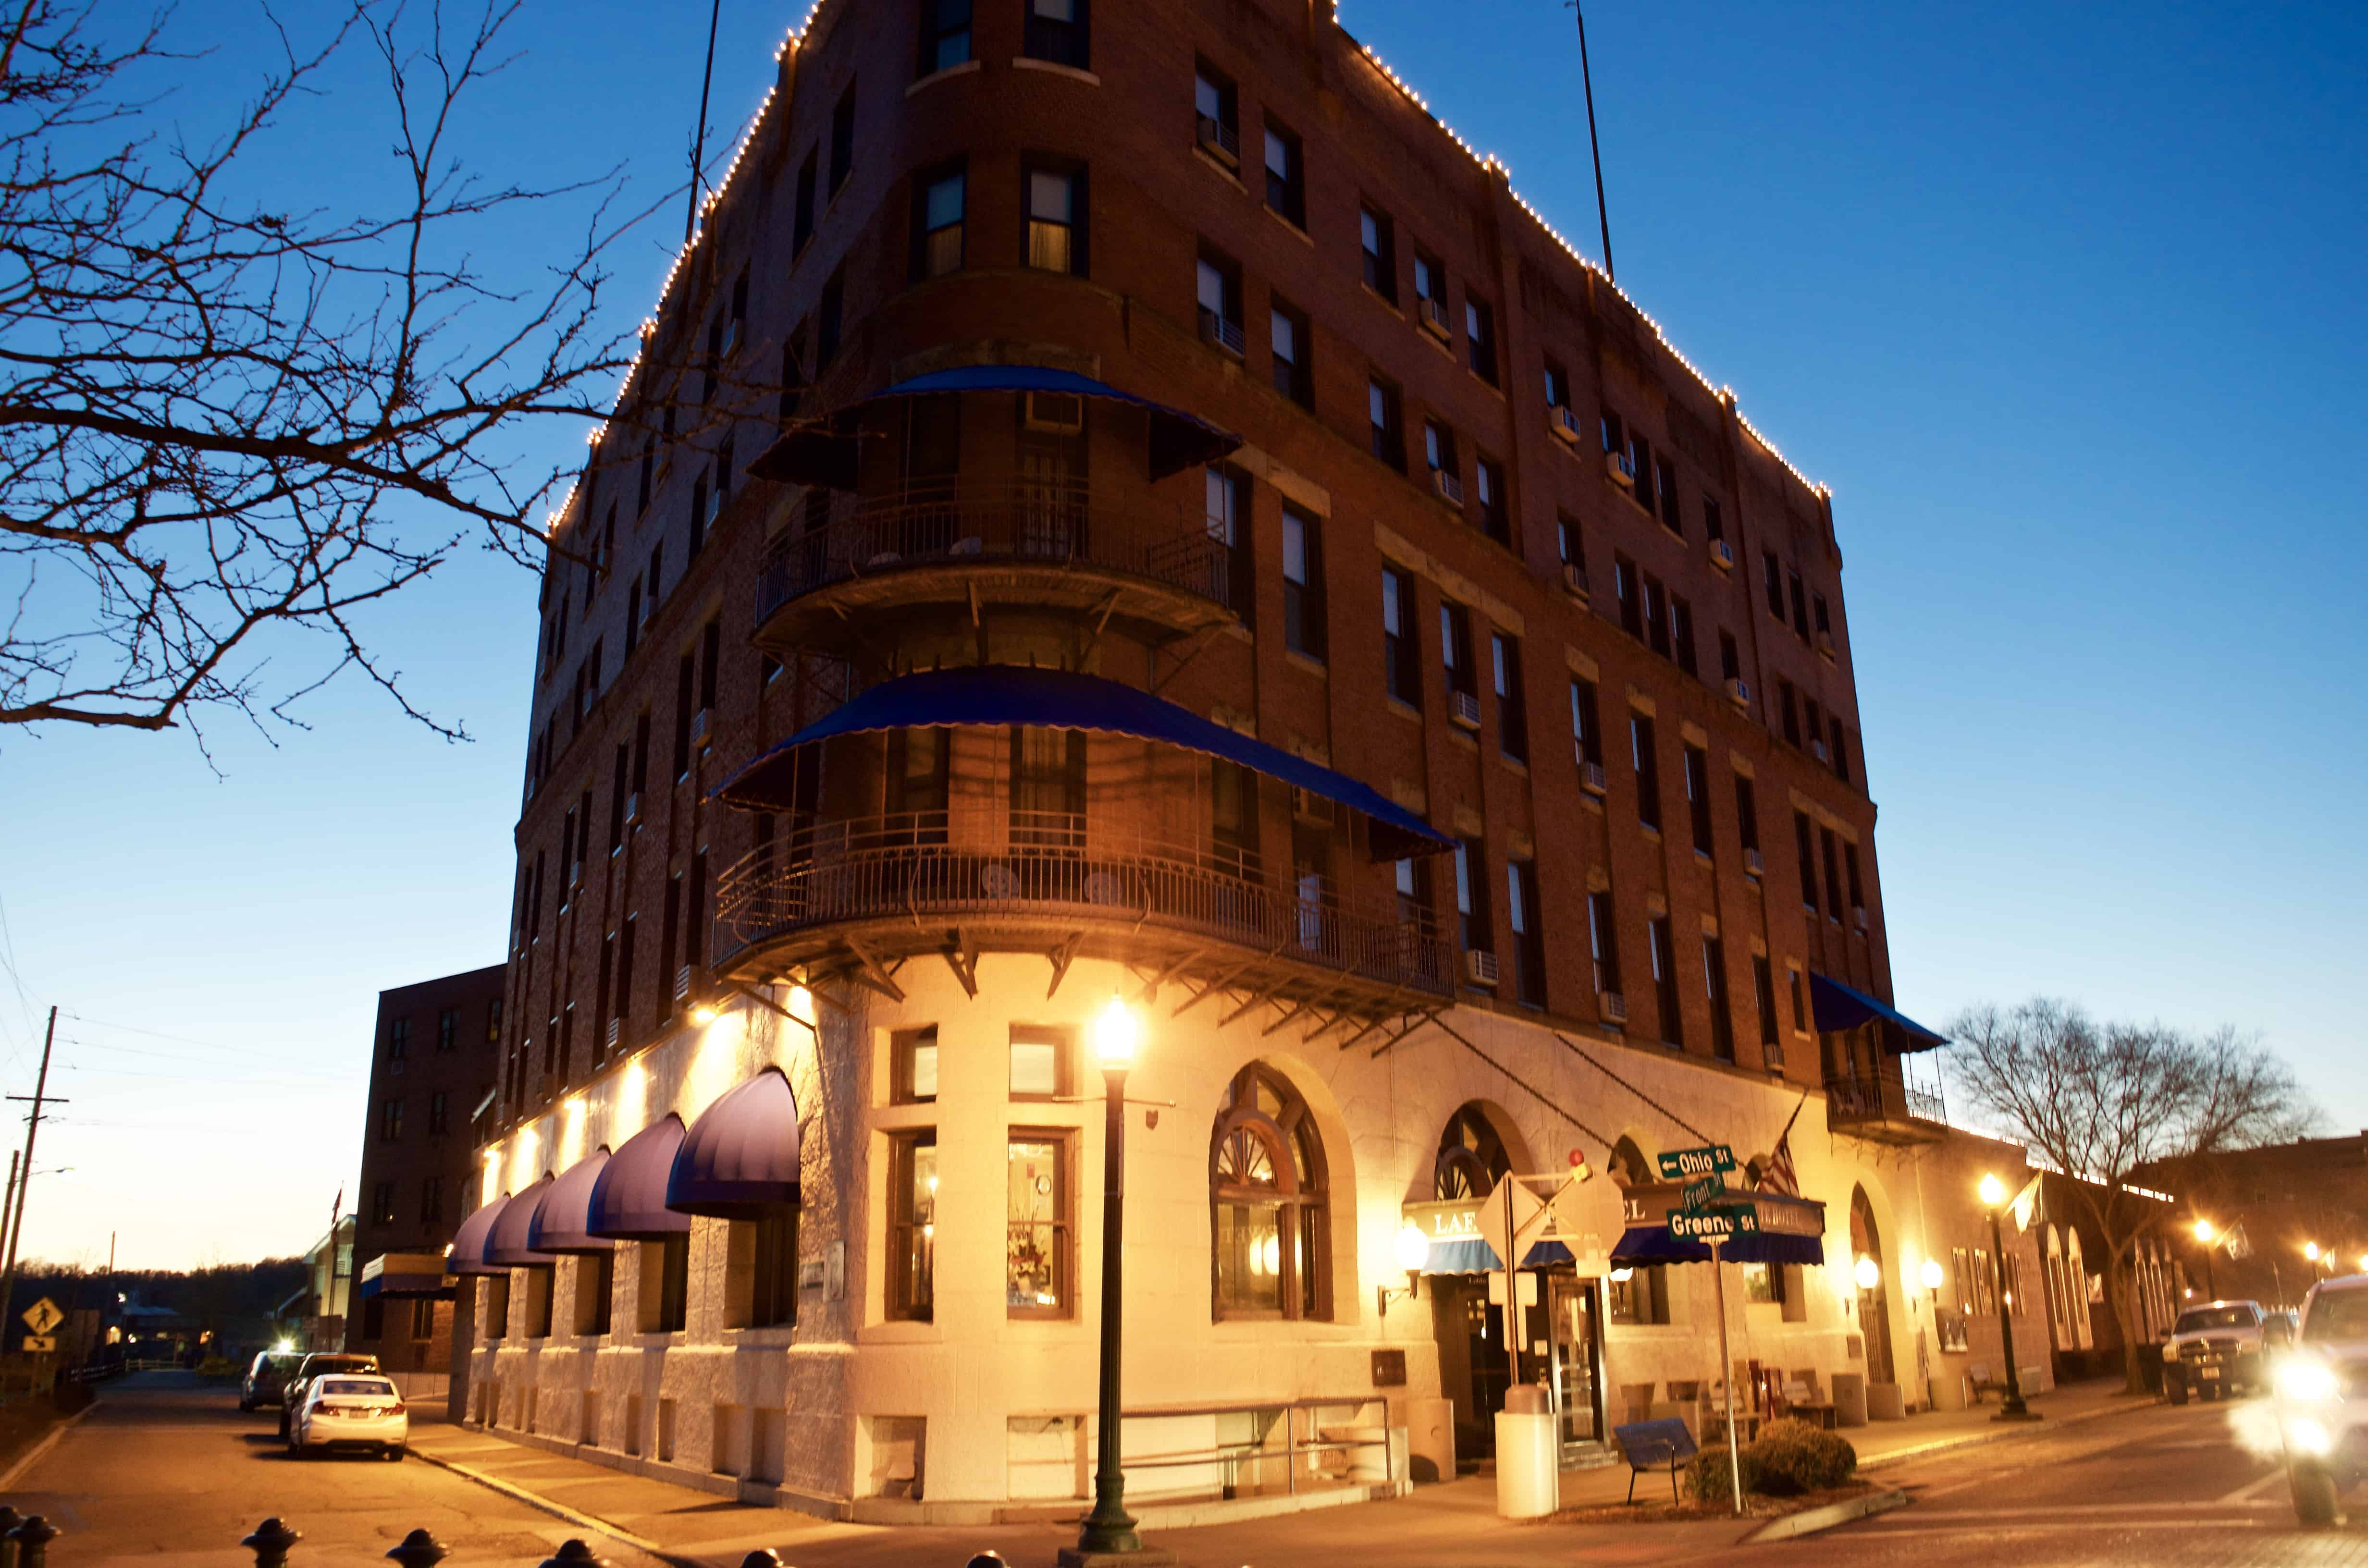 Two Places to Stay in Marietta, Ohio You Can't Go Wrong With